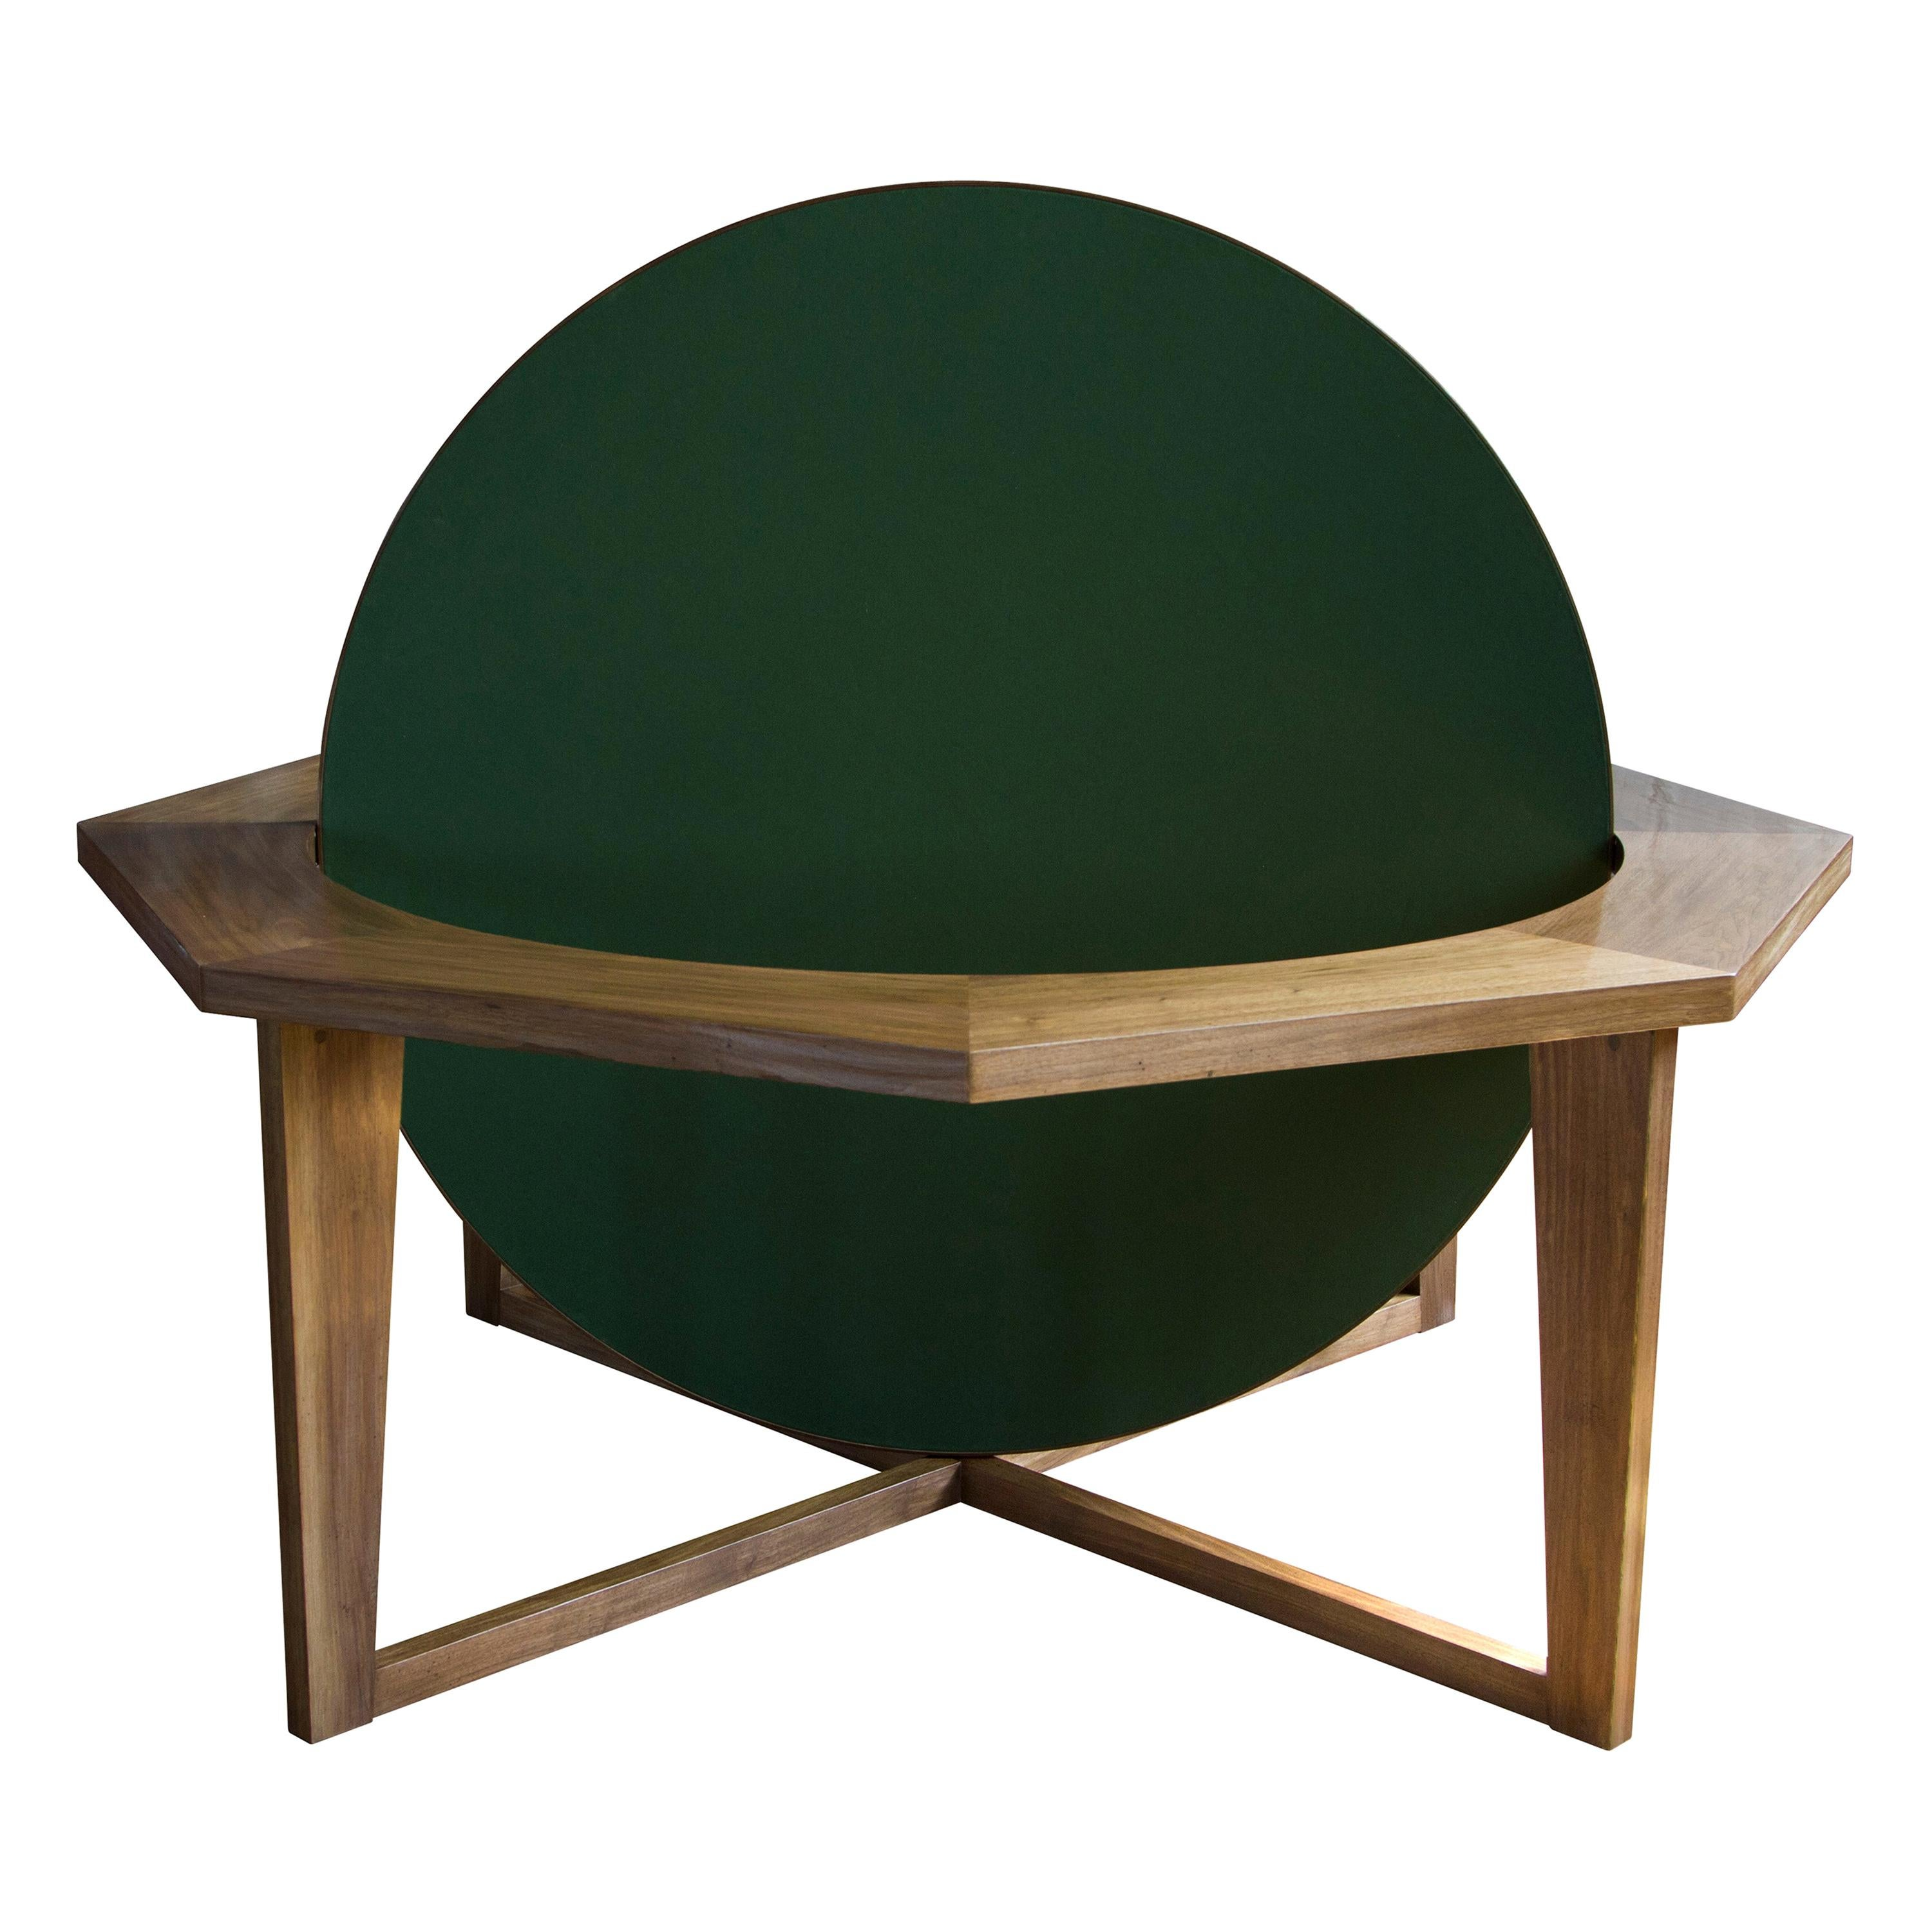 Hendricks Poker / Dining Table - handcrafted by Richard Wrightman Design